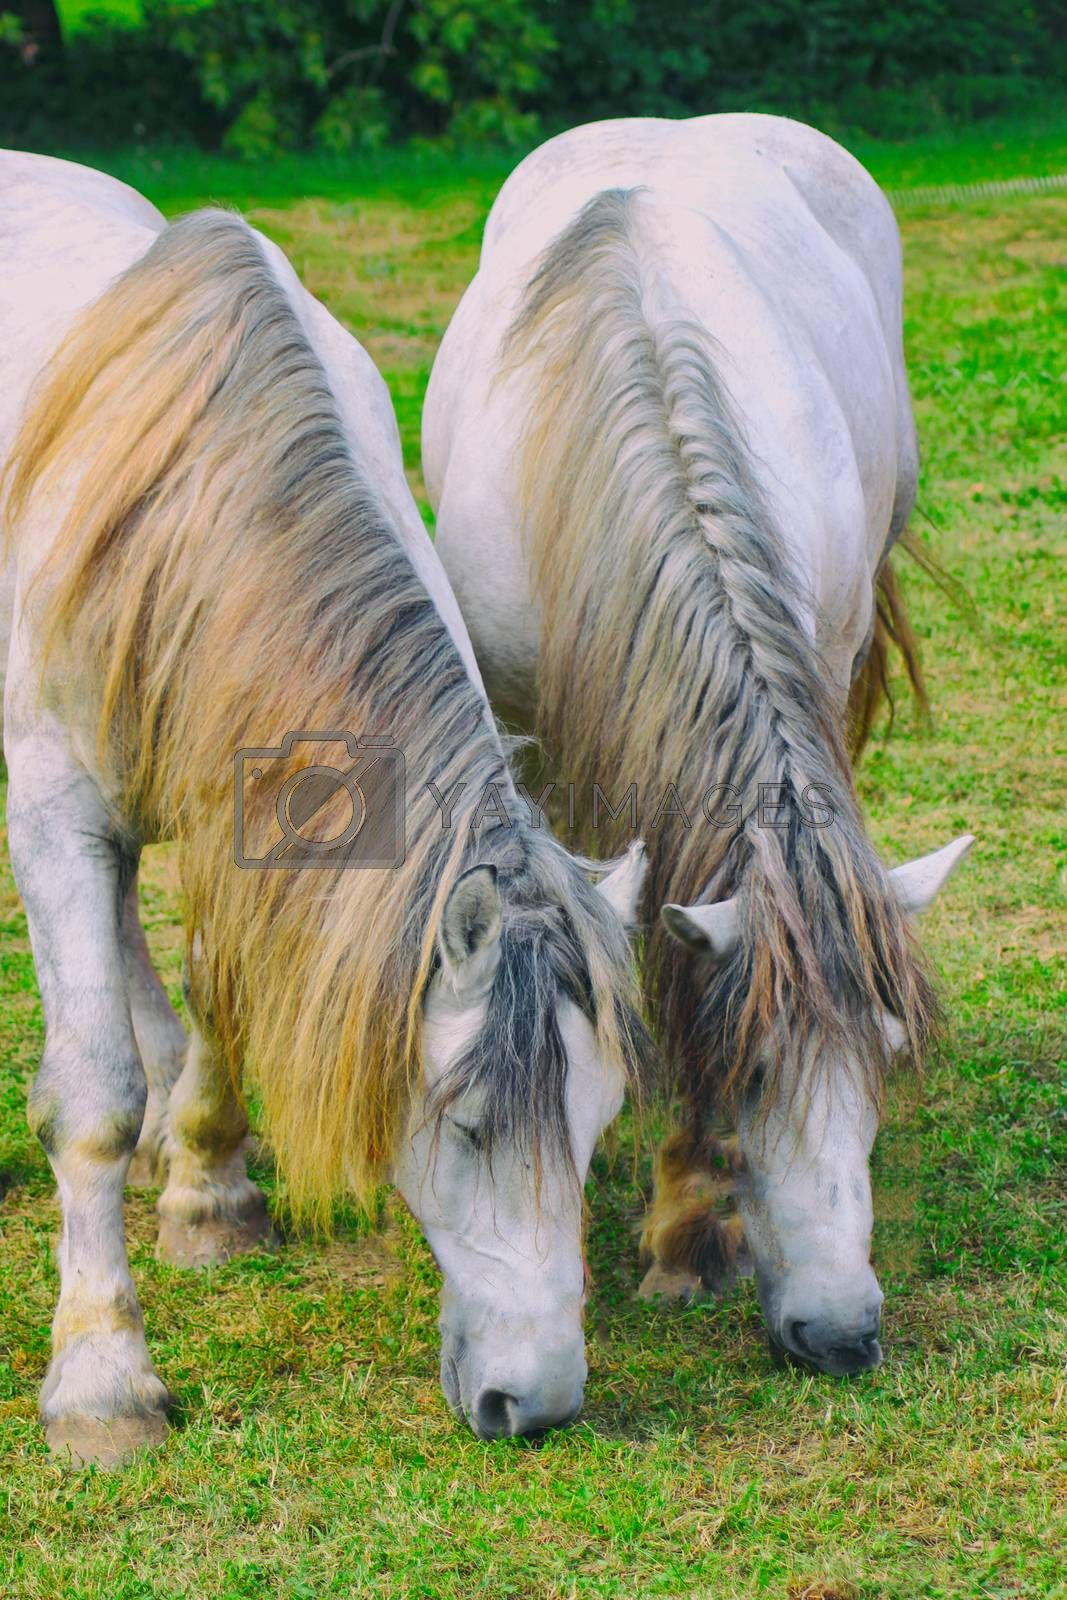 two white horses with coiffed mane graze on green grass, muzzle down.